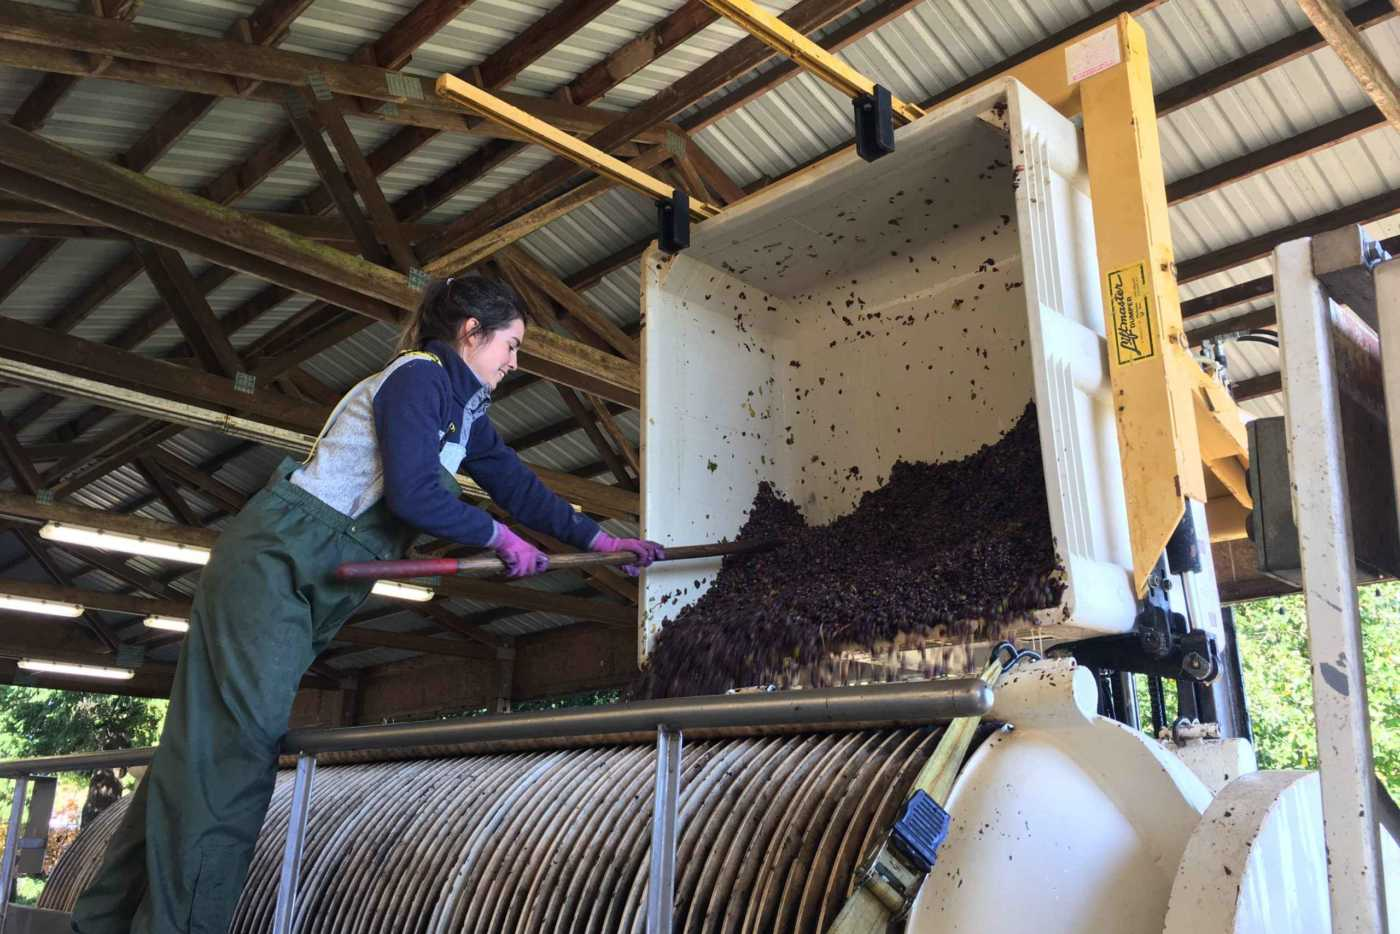 Krystal working the winepress during Harvest